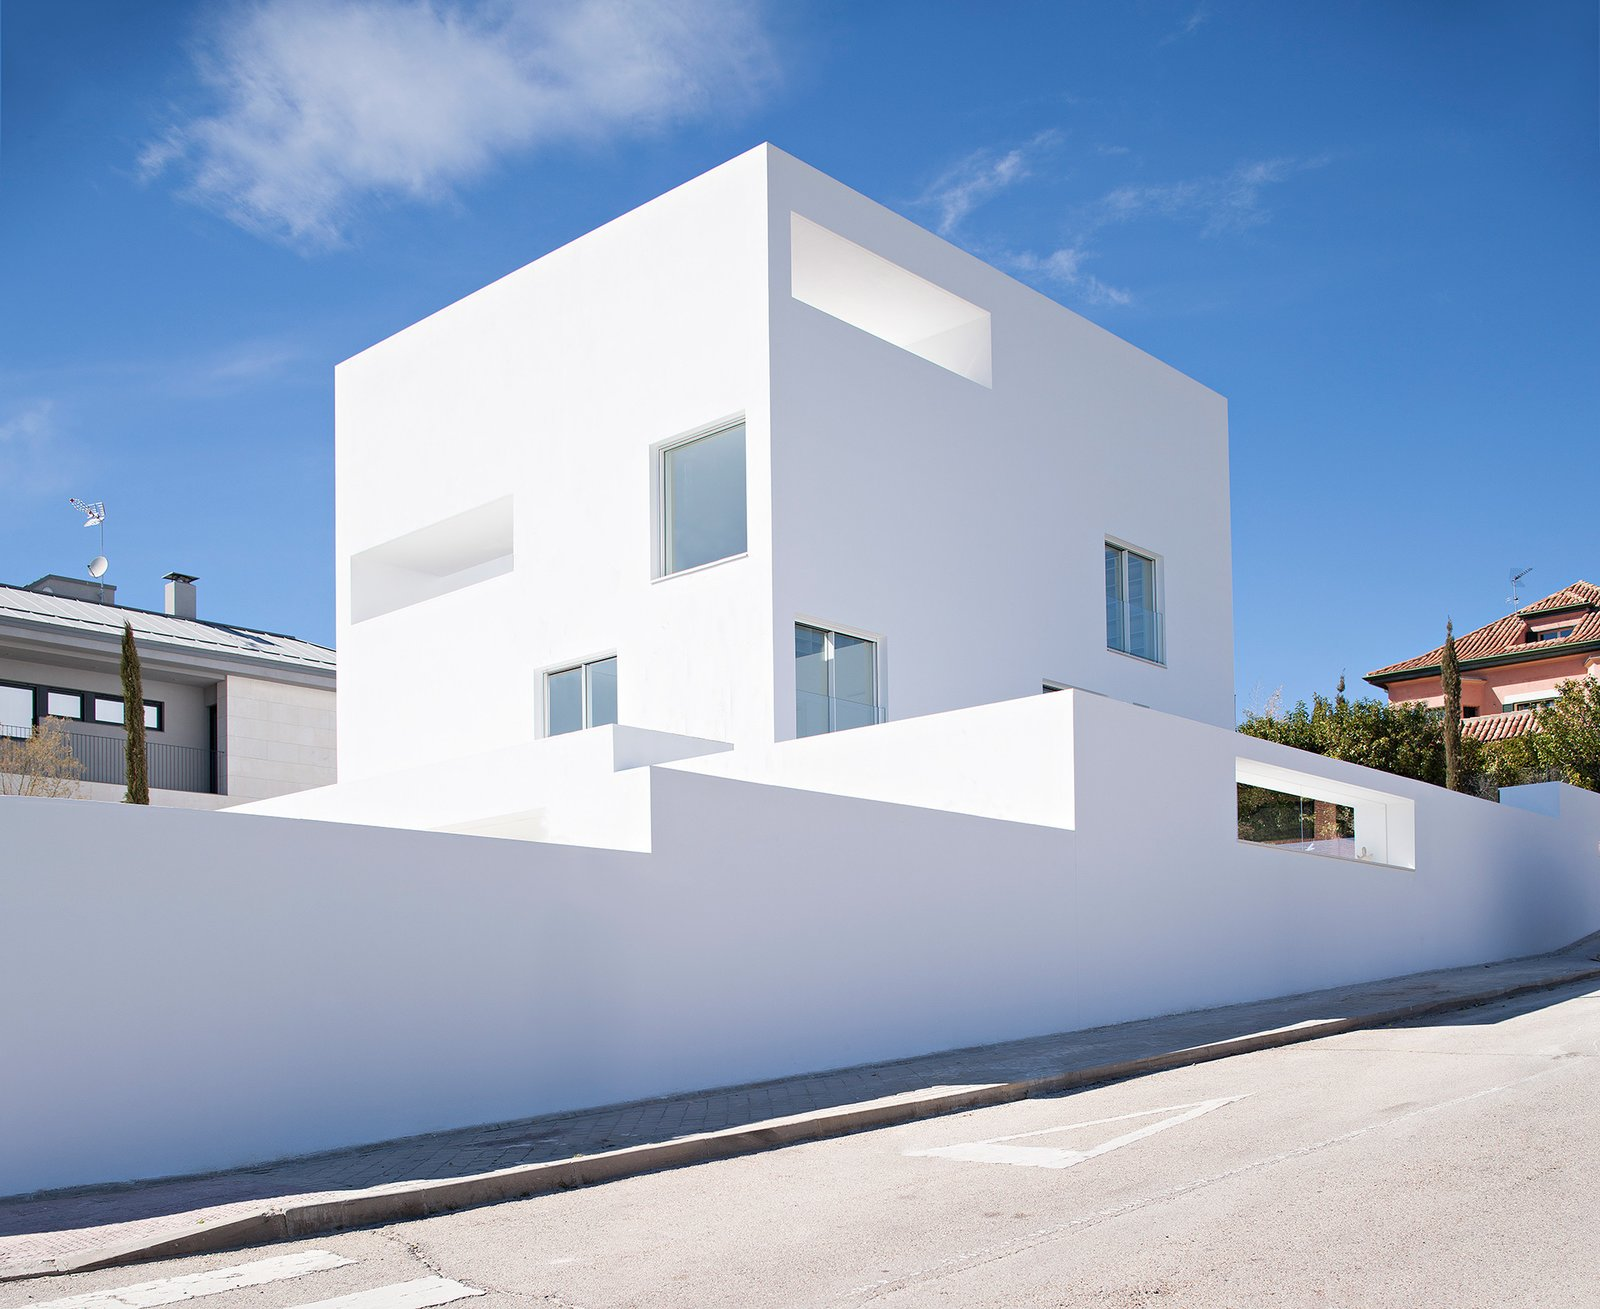 Photo 3 of 6 in Raumplan House by Alberto Campo Baeza